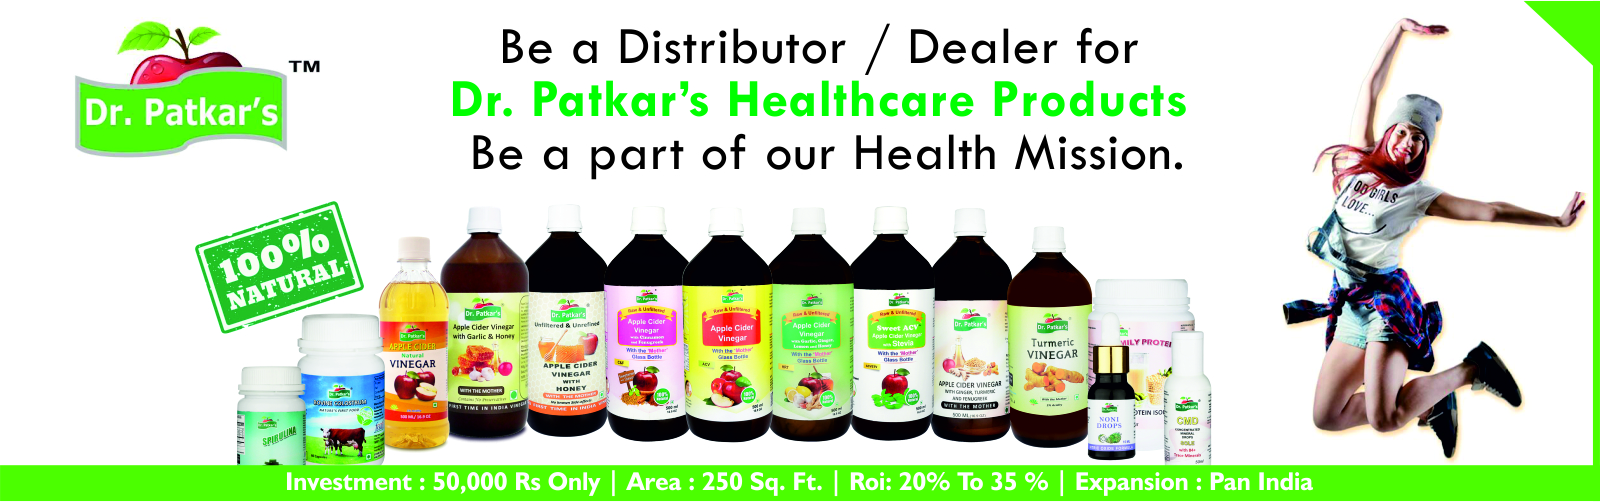 Dealers and Distributors Franchise, Distributor Franchise